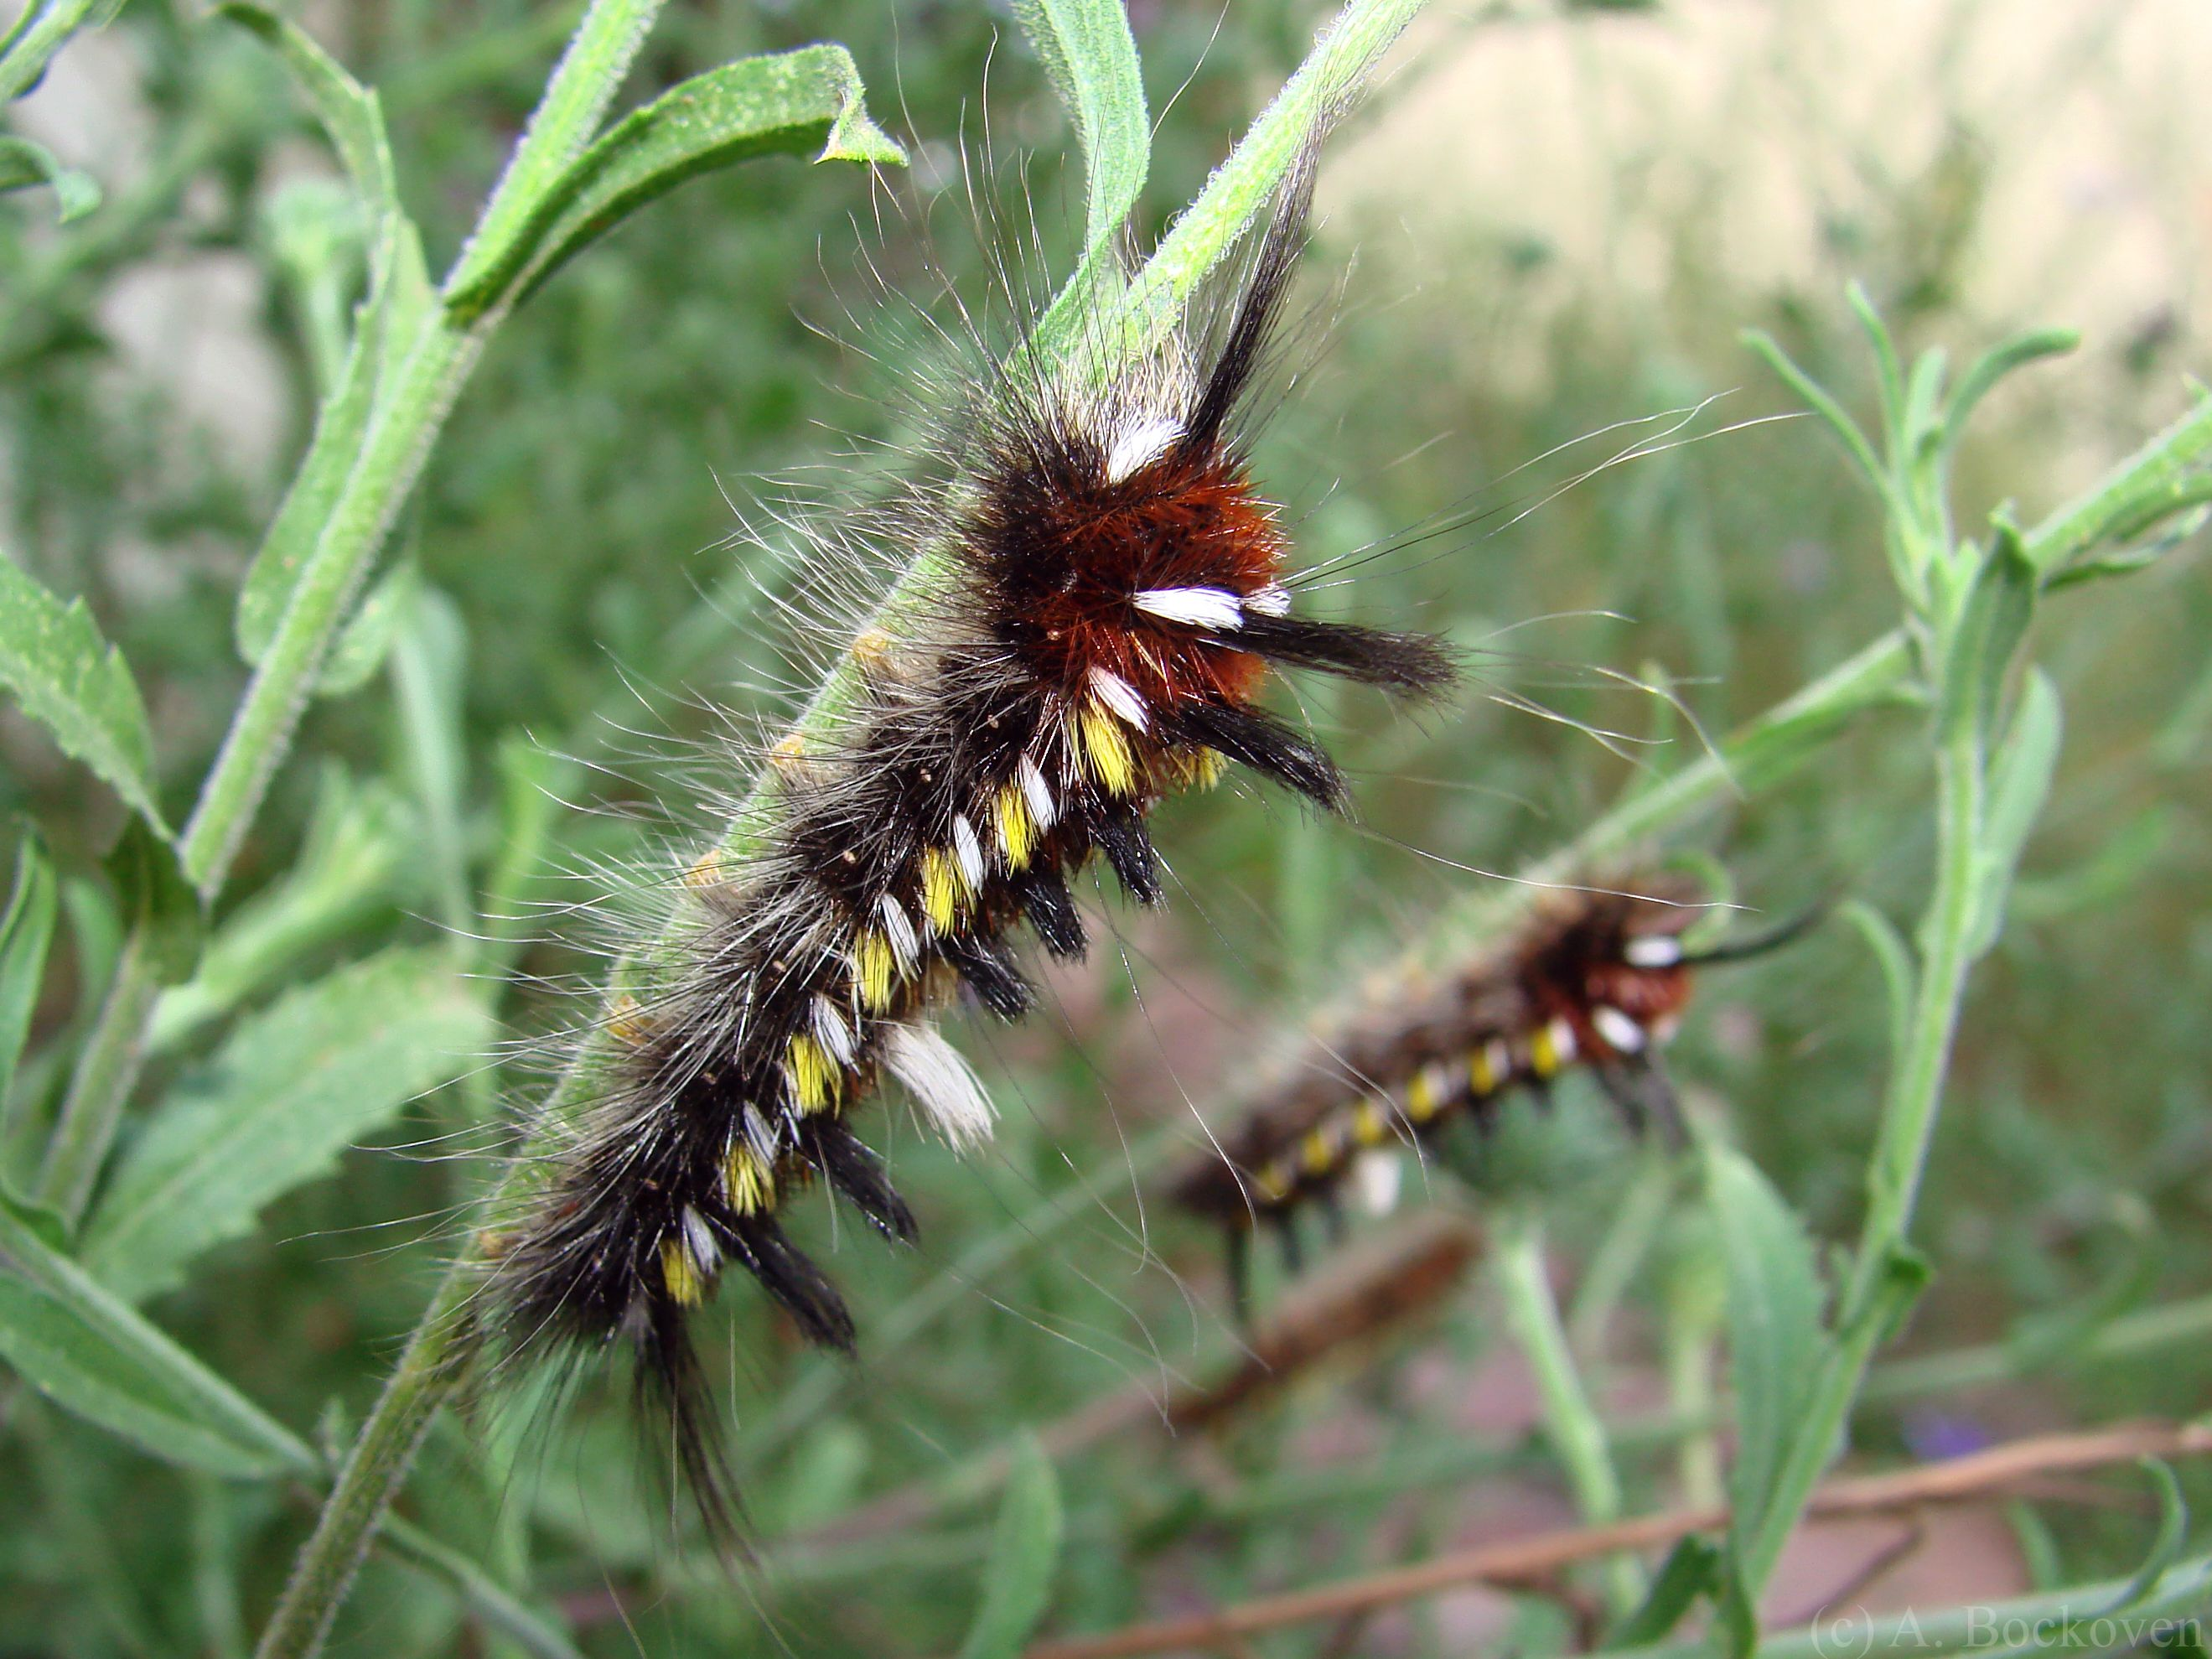 Posts About Caterpillars On 6legs2many Caterpillar Spotted Yellow Red White